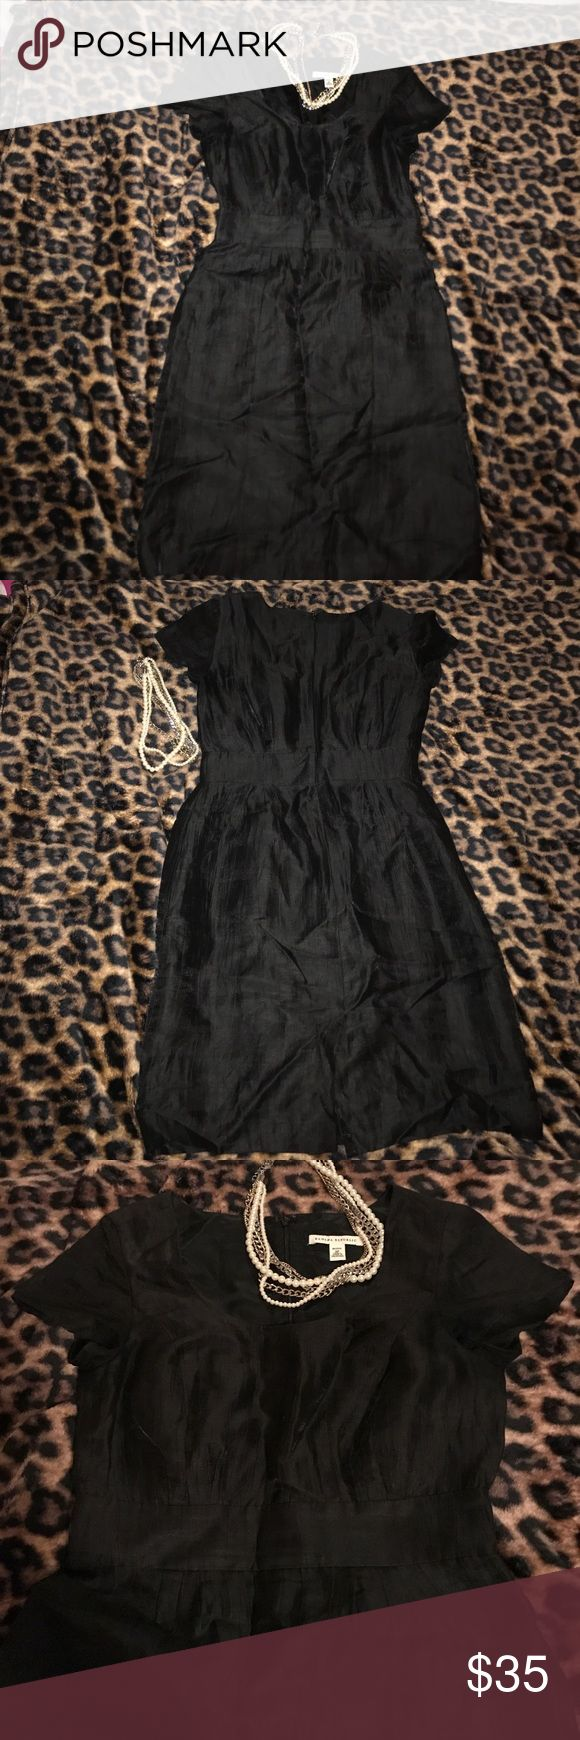 "💕""Banana Republic"" Petite Black Dress Sz 2P 💝 💝 ""BANANA REPUBLIC"" Beautiful Petite Black Dress Sz 2P. 84% Linen, 16% Nylon, the material has some kind of glow to it!!! Slightly open in the back. Only worn Once!!! Like New!!!❤️😍 Banana Republic Dresses"